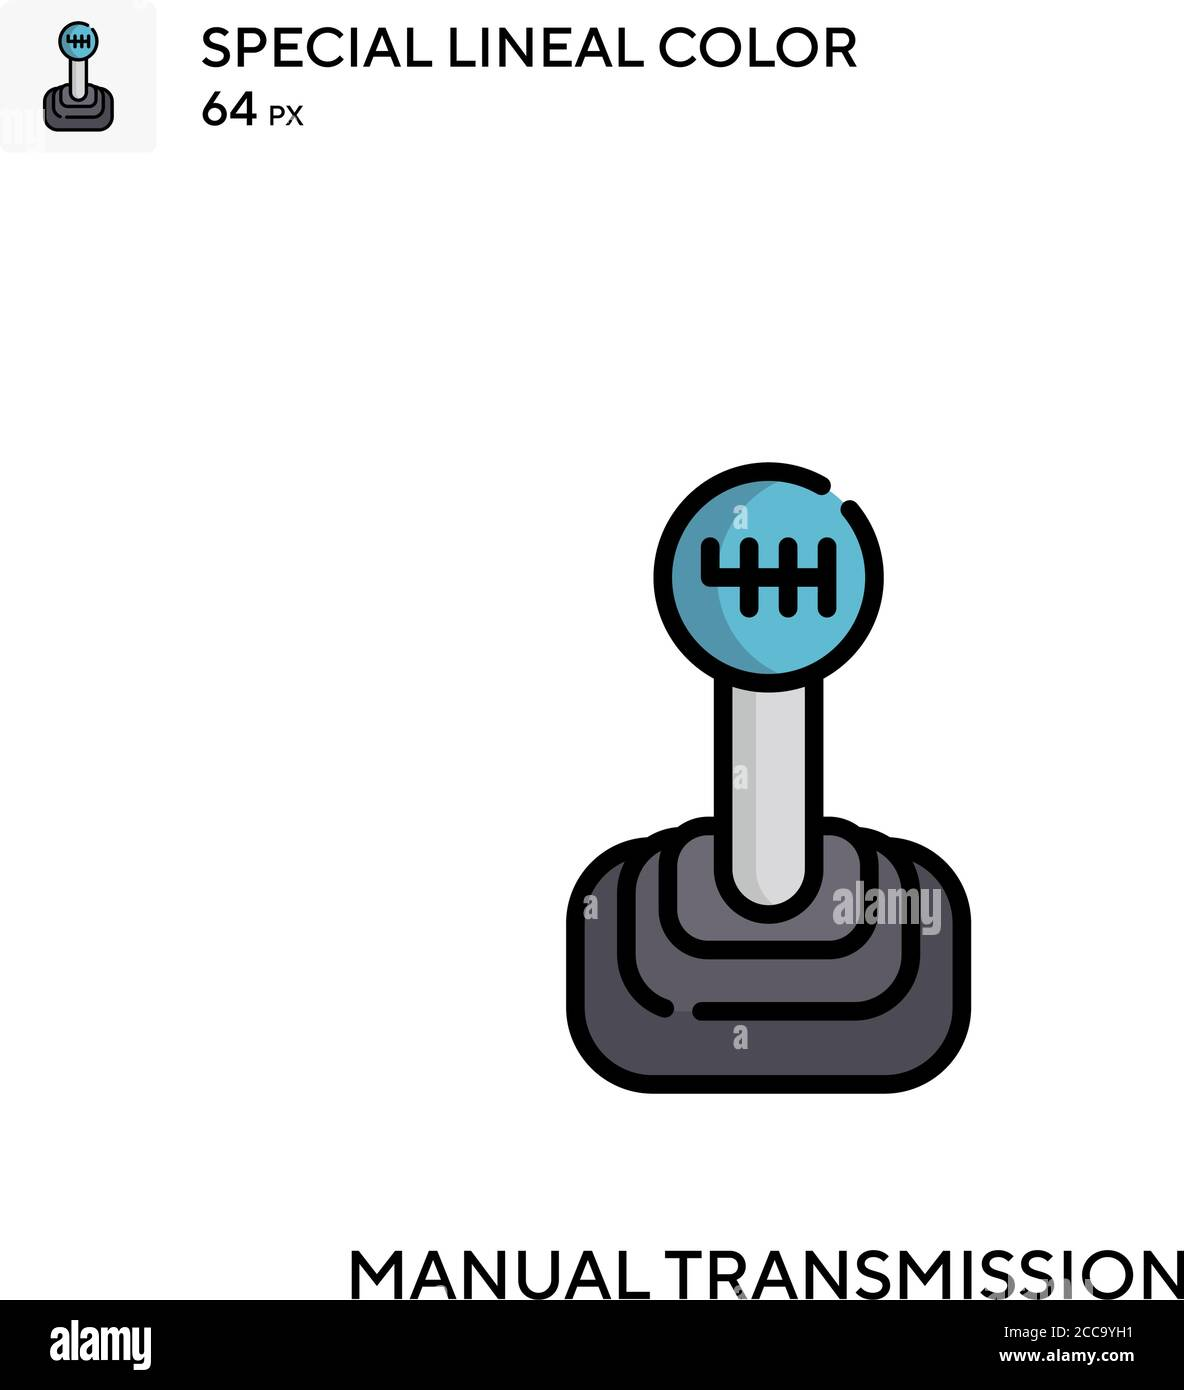 Manual Transmission Special Lineal Color Vector Icon Illustration Symbol Design Template For Web Mobile Ui Element Stock Vector Image Art Alamy